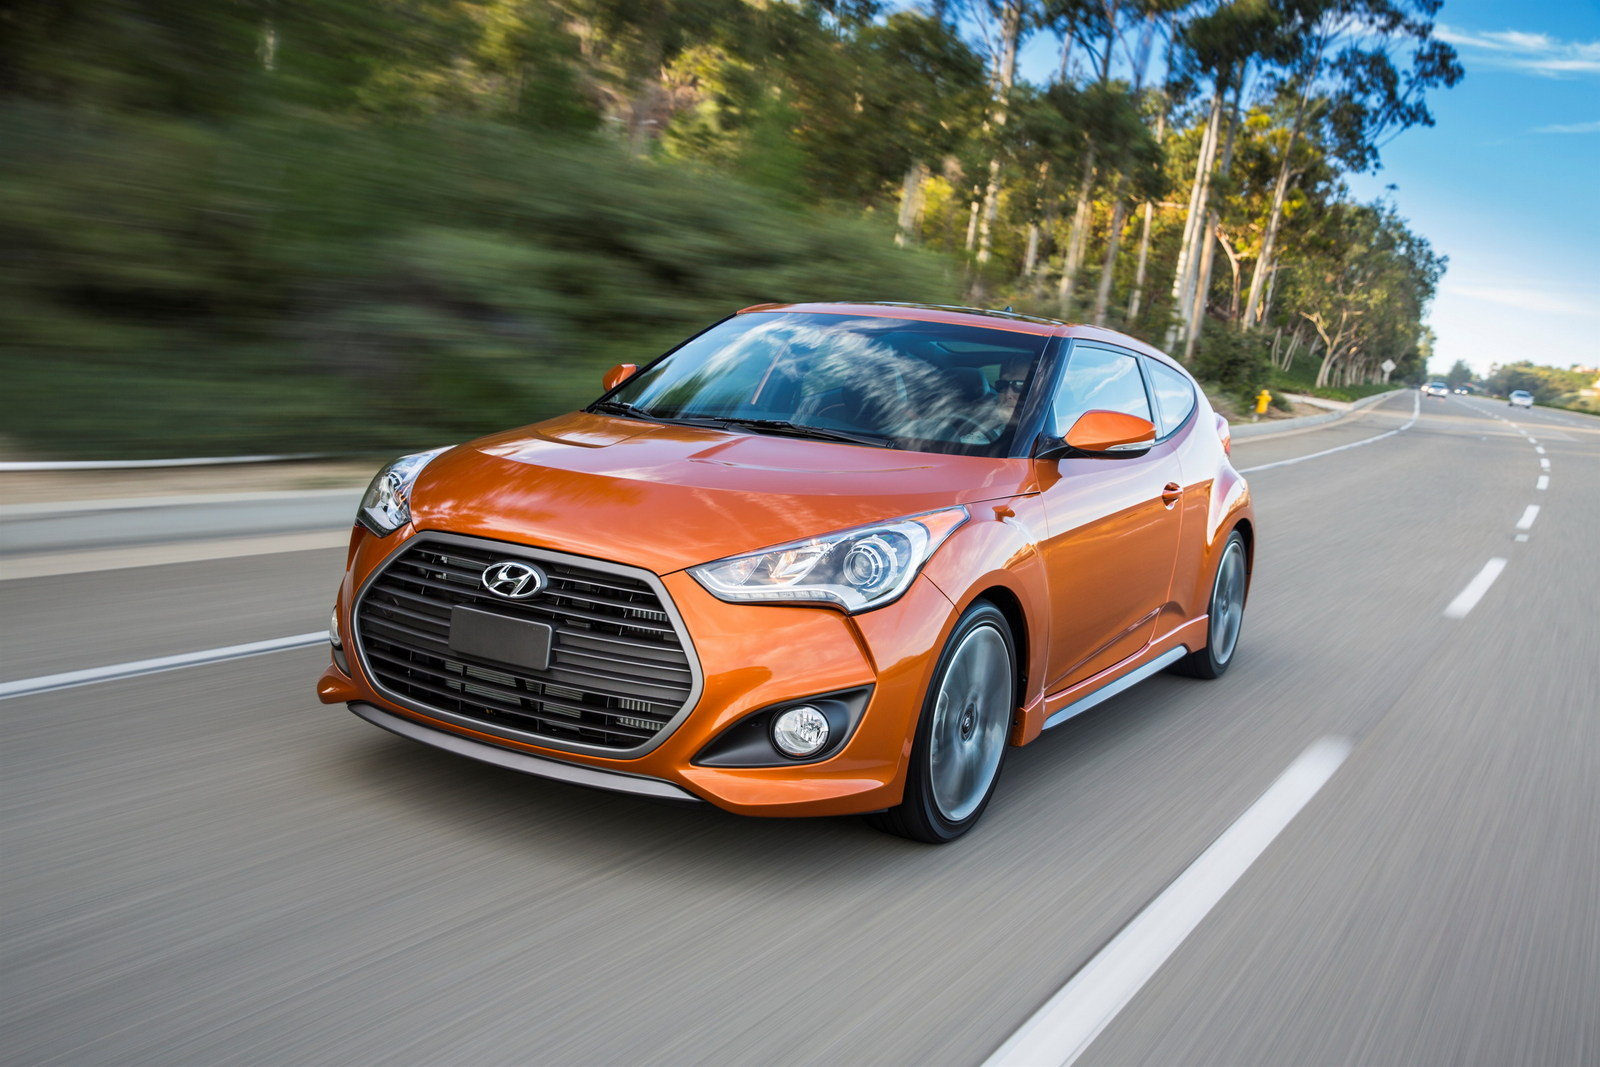 2016 hyundai veloster turbo picture 617105 car review top speed. Black Bedroom Furniture Sets. Home Design Ideas